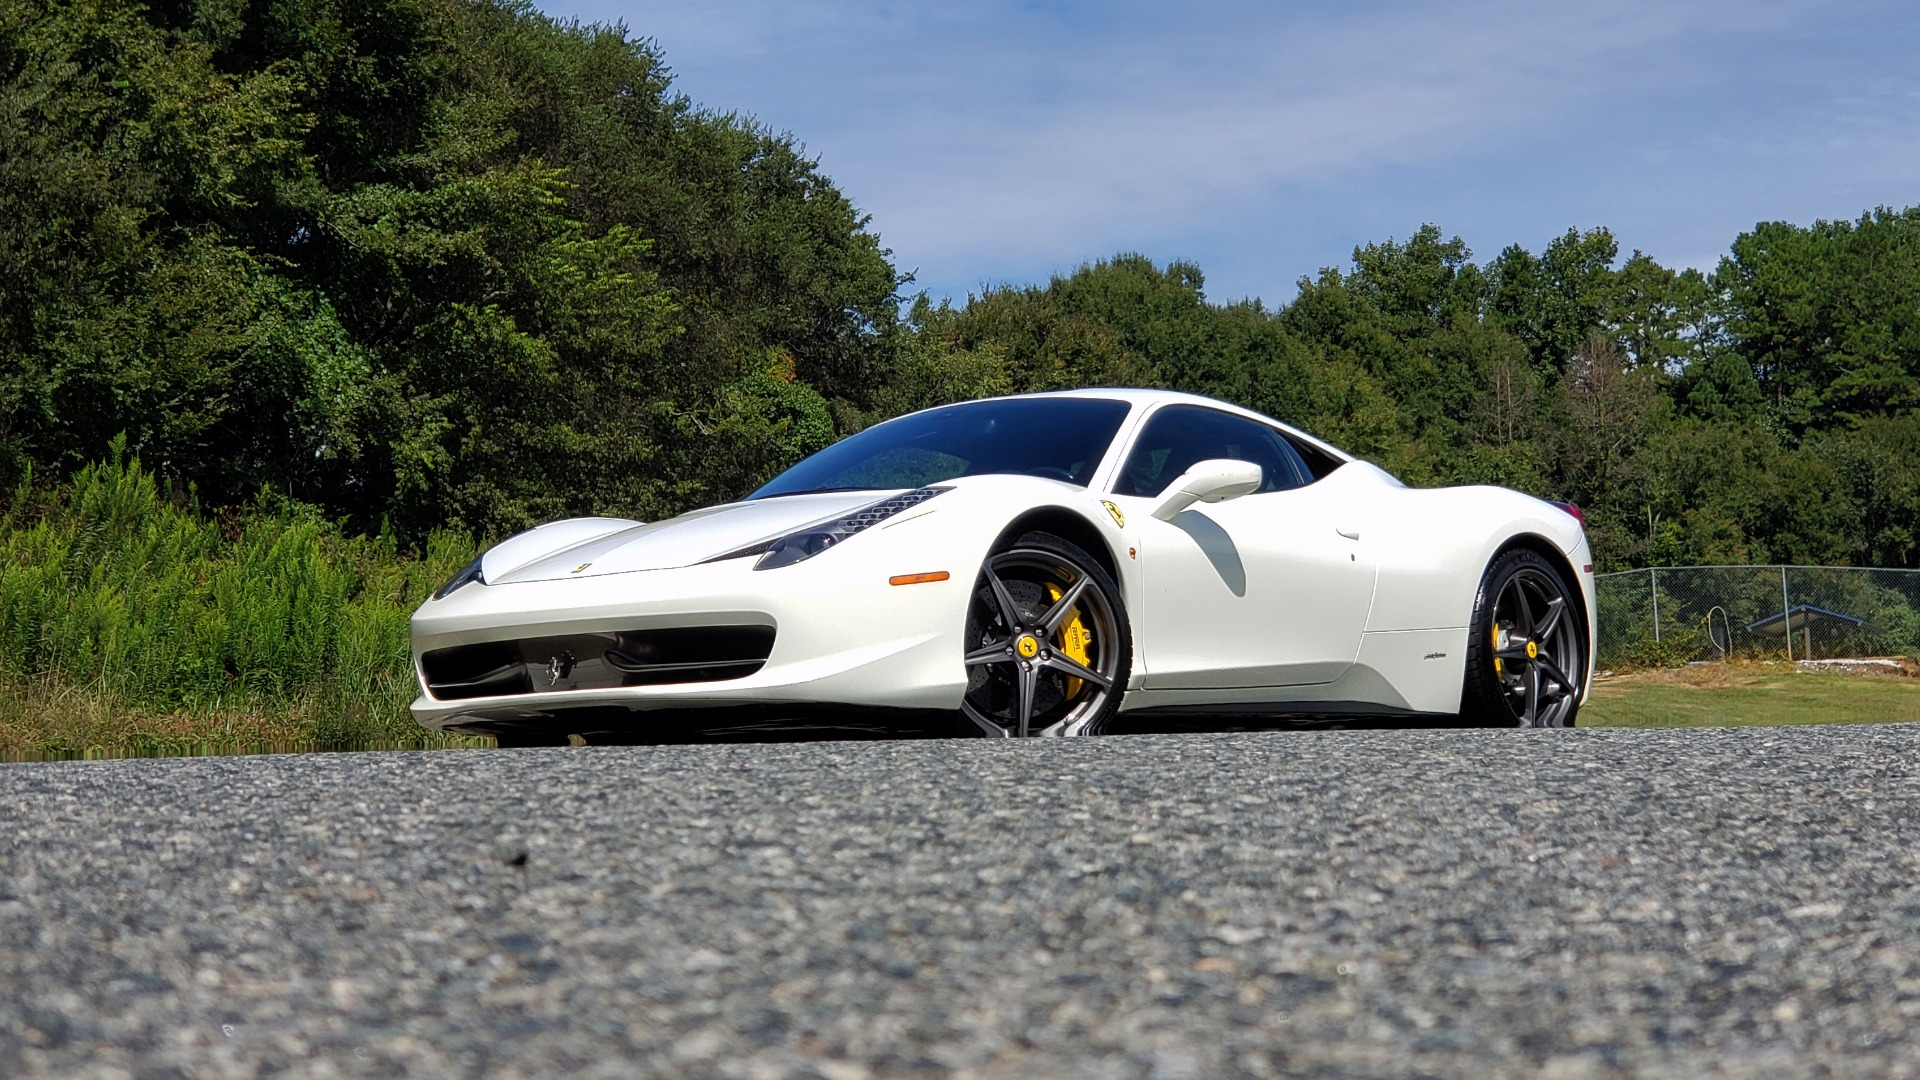 Used 2012 Ferrari 458 ITALIA COUPE / 4.5L V8 / 7-SPEED AUTO / LOW MILES SUPER CLEAN for sale $169,999 at Formula Imports in Charlotte NC 28227 2